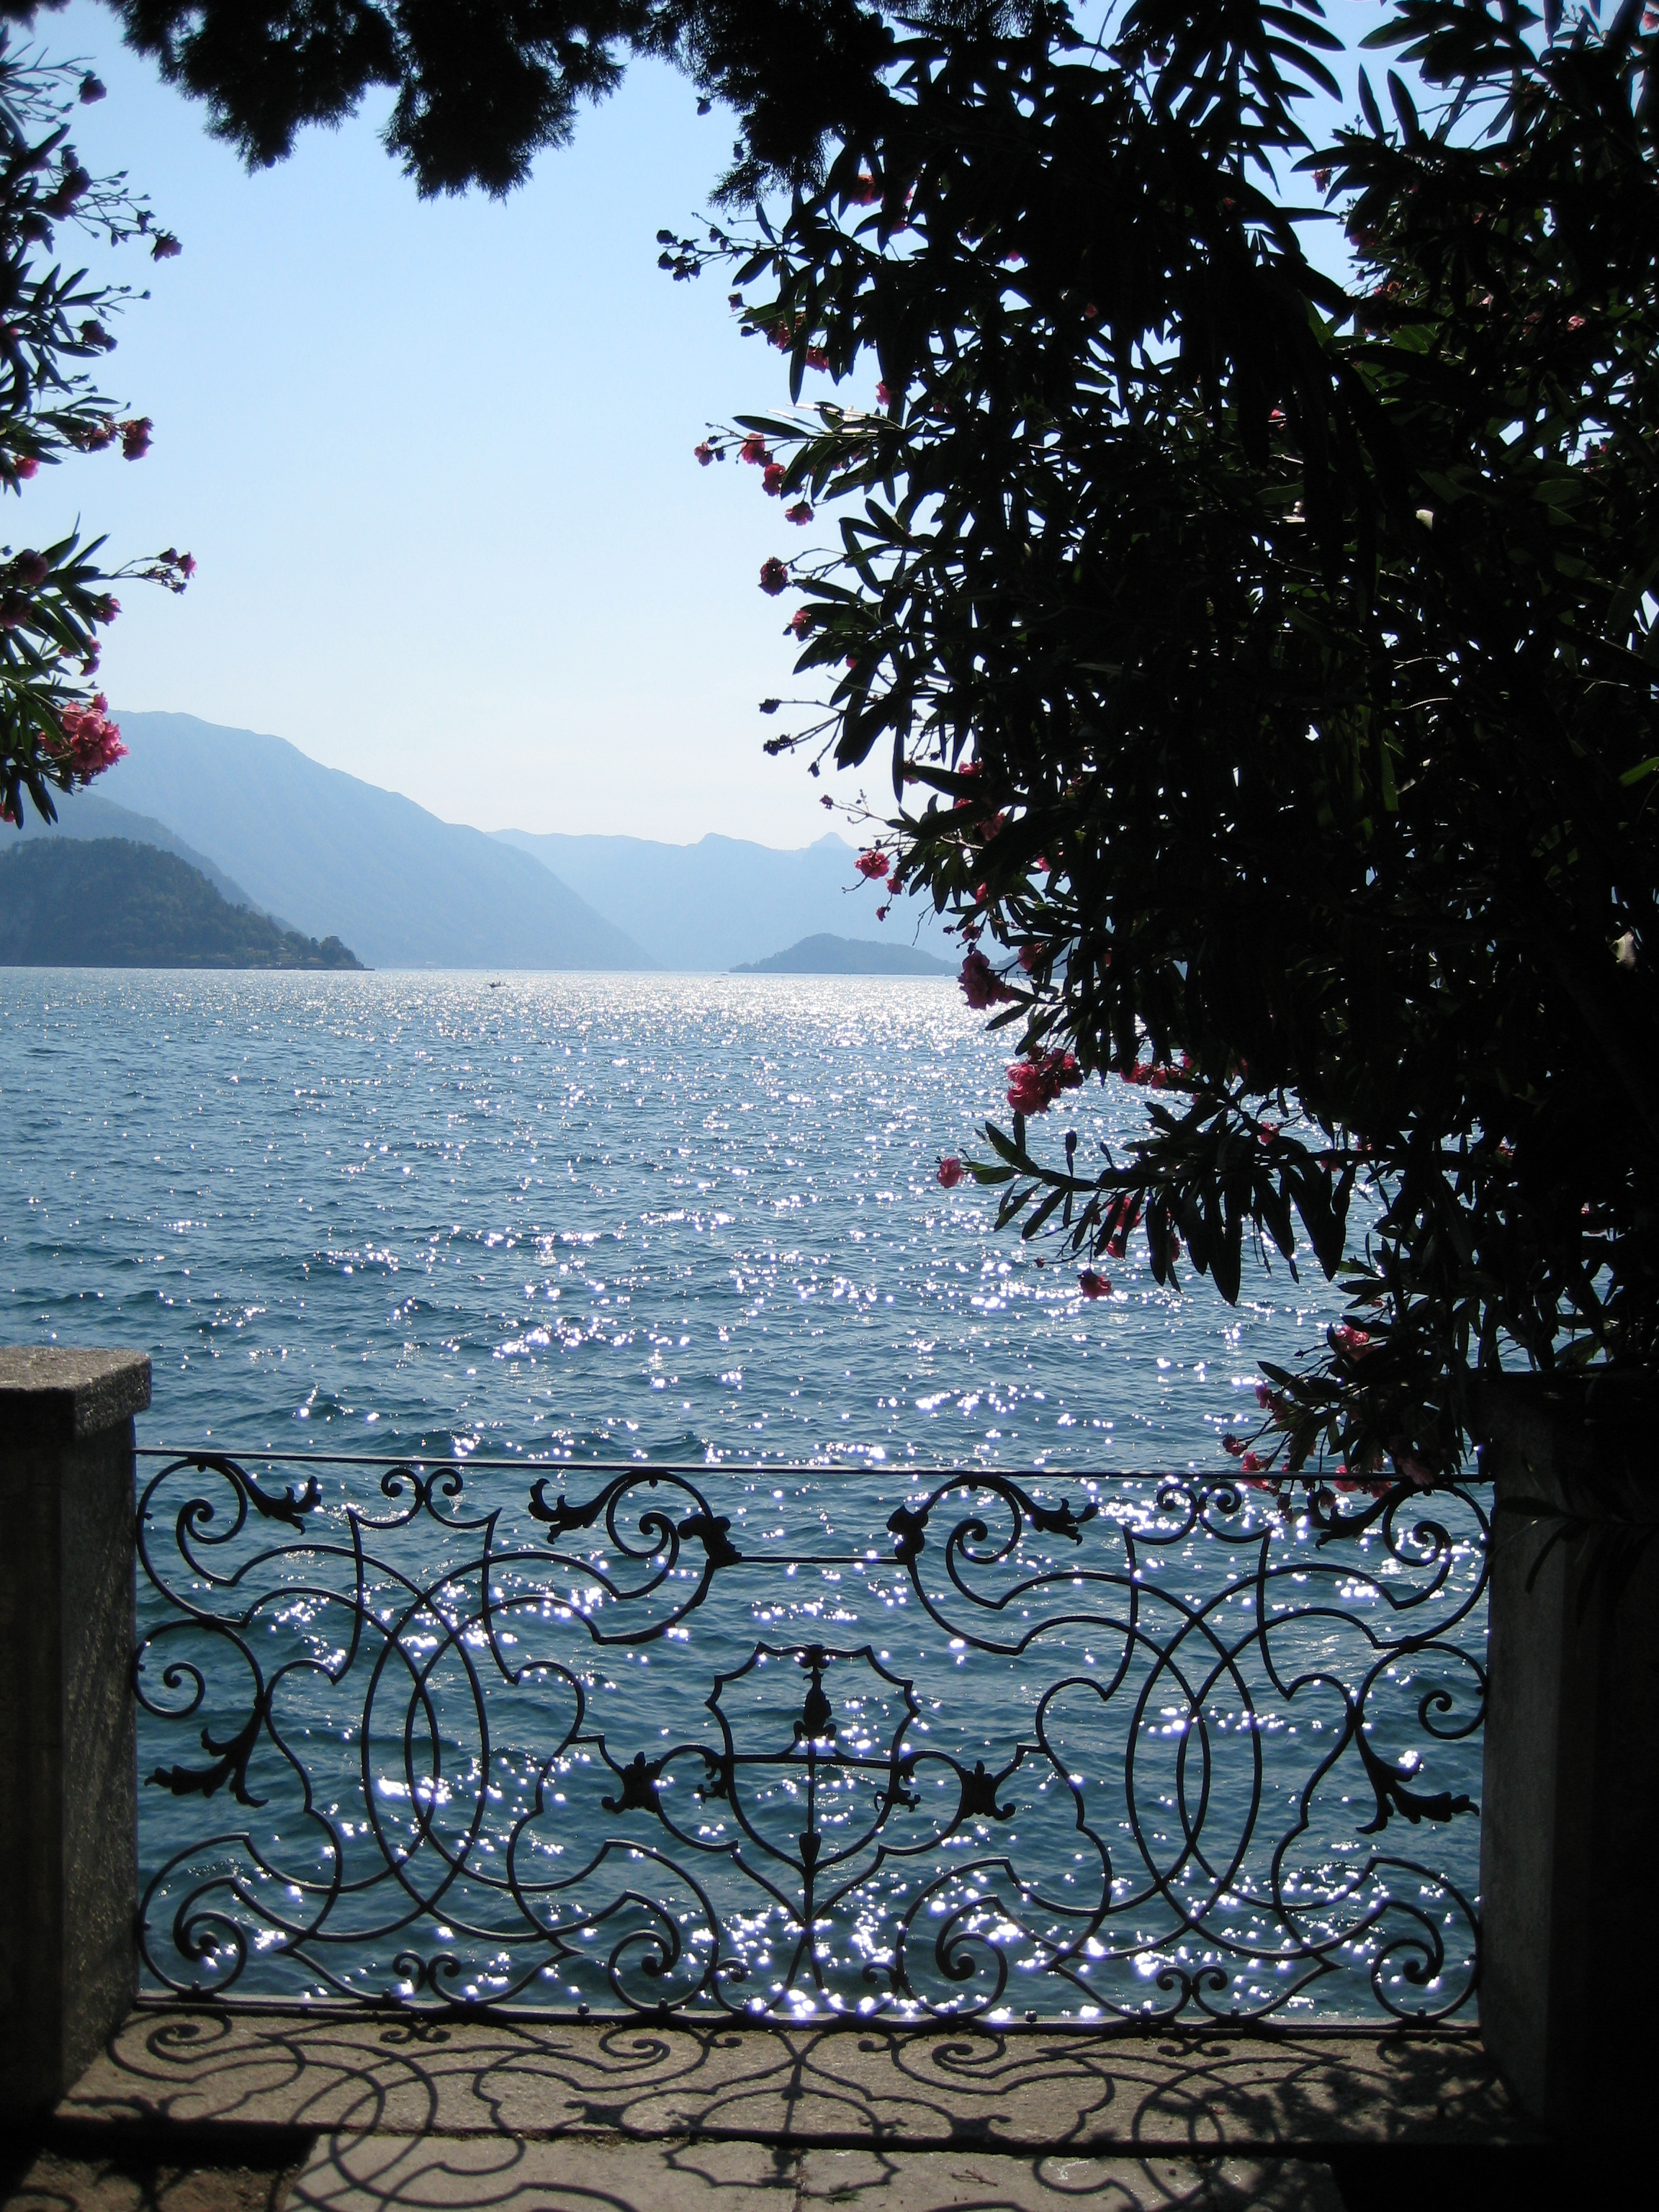 File:Lake Como from Varenna 02.jpg